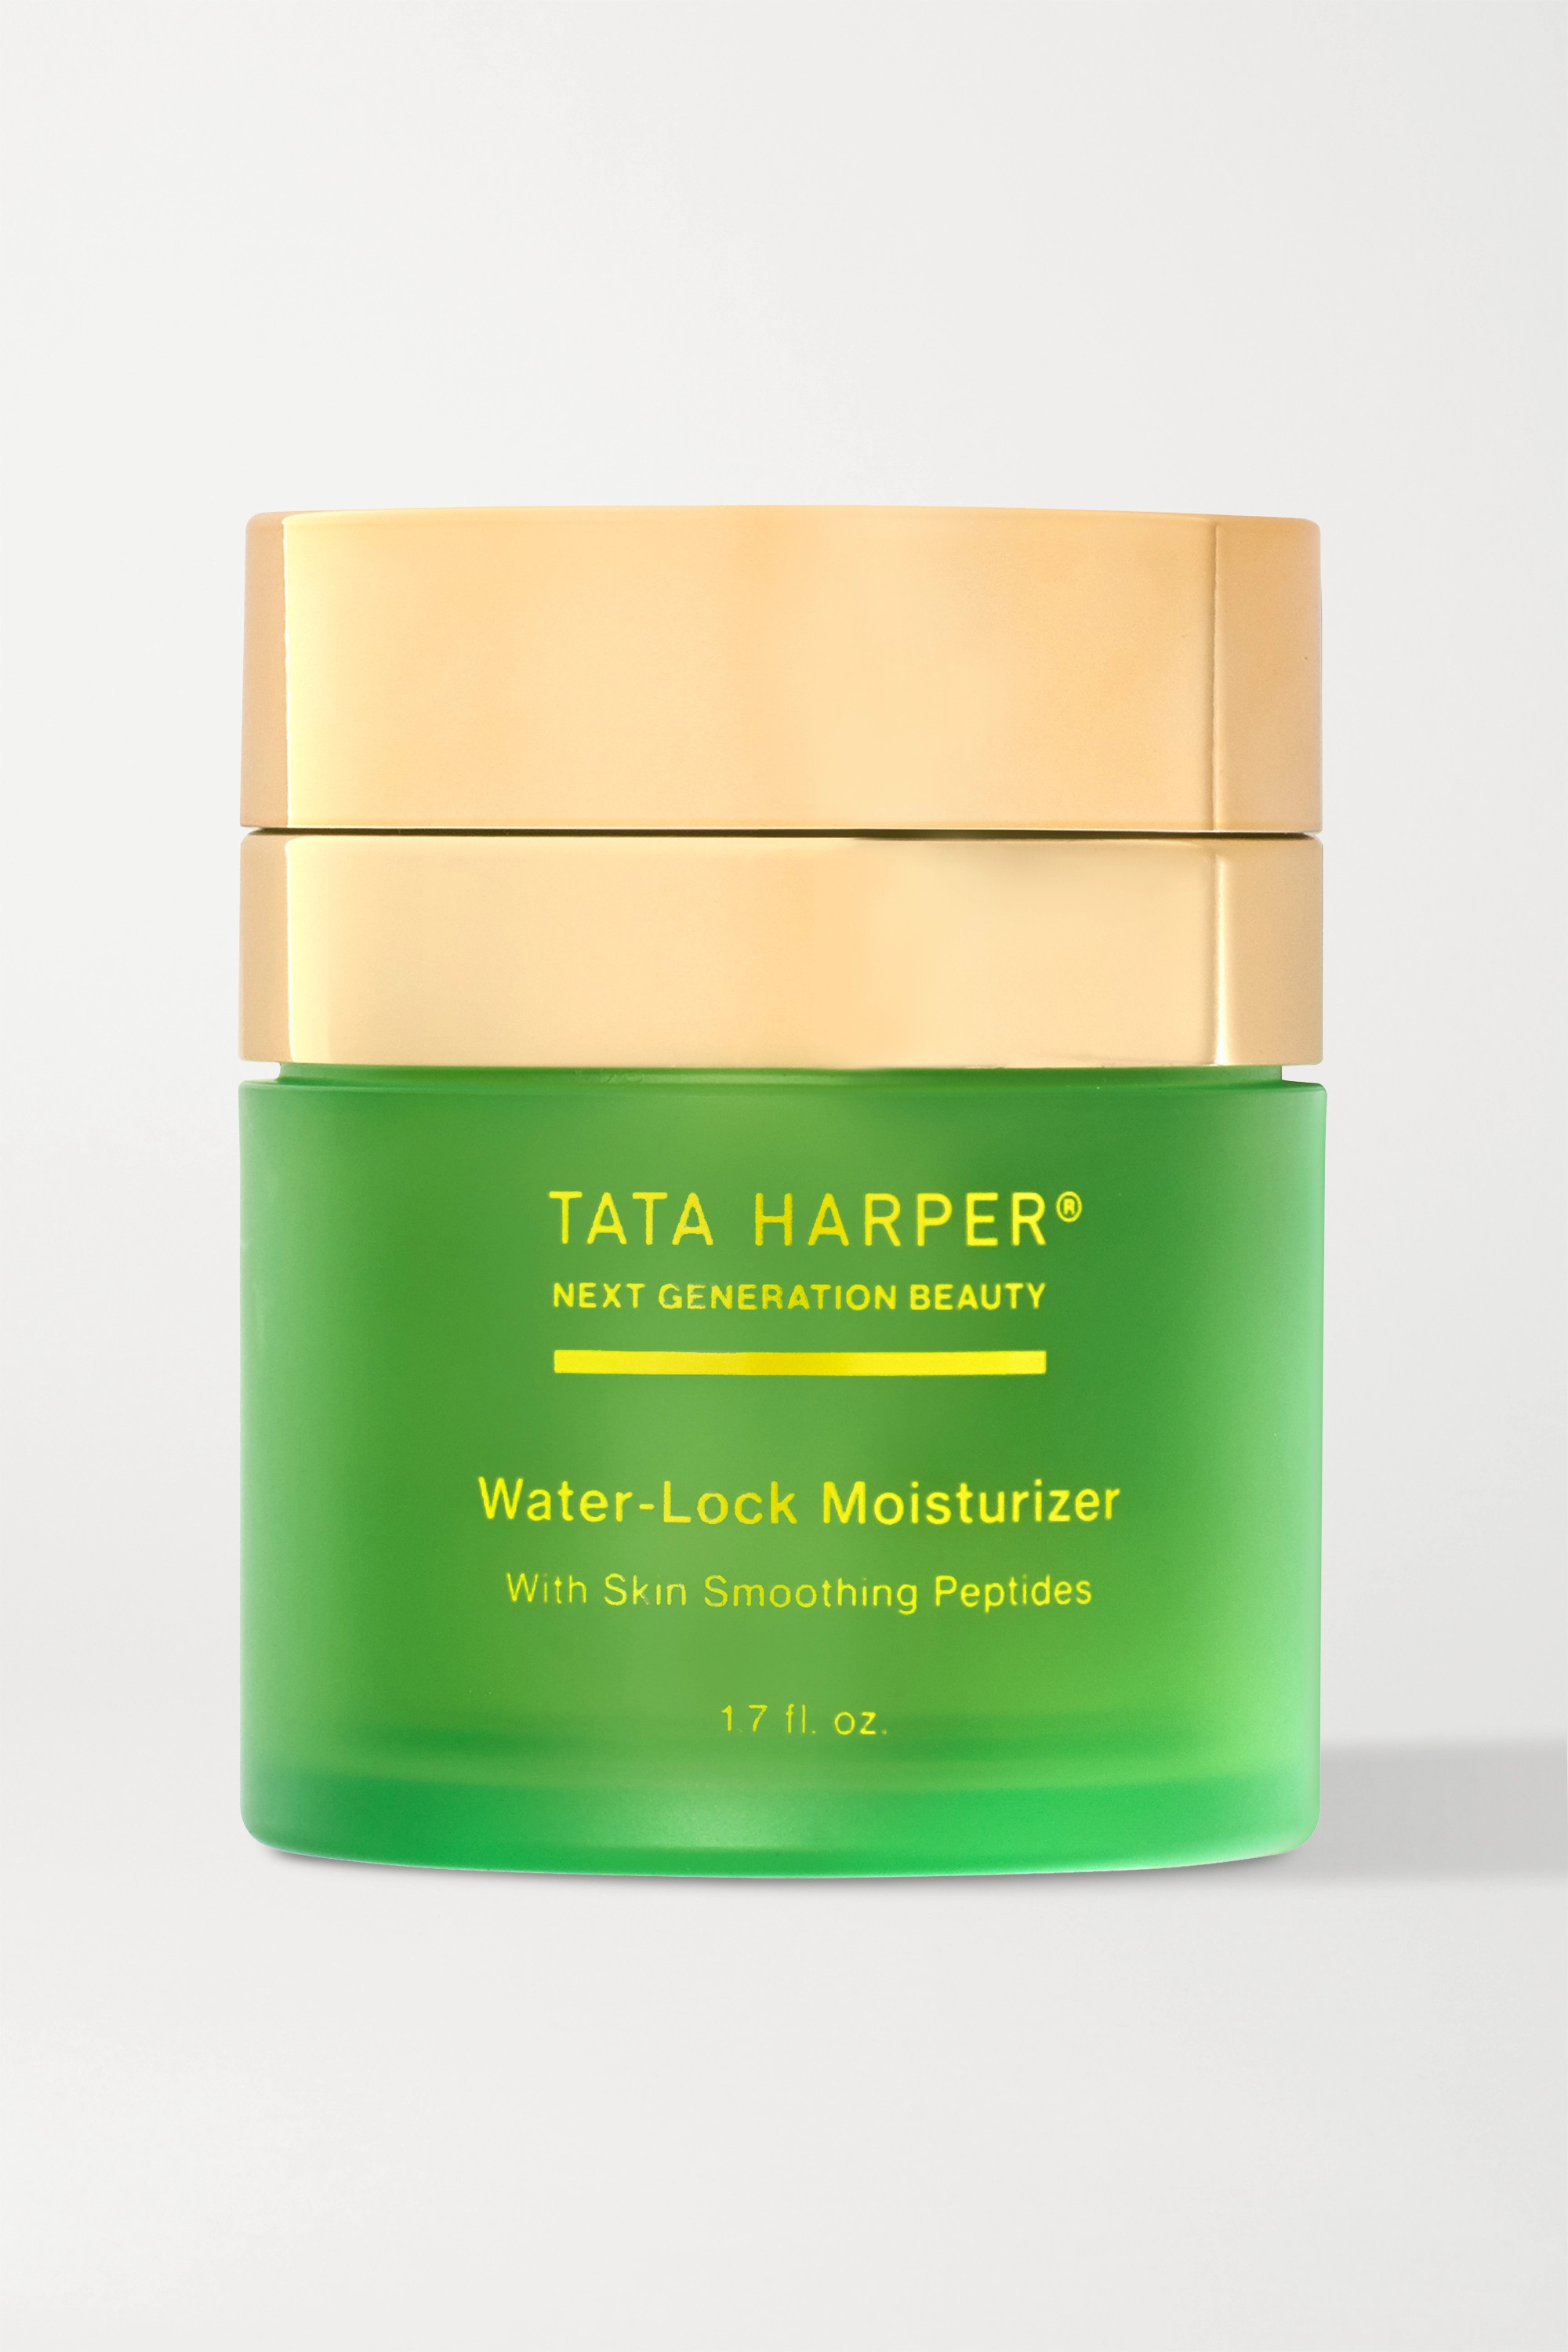 TATA HARPER Water-Lock Moisturizer, 50ml